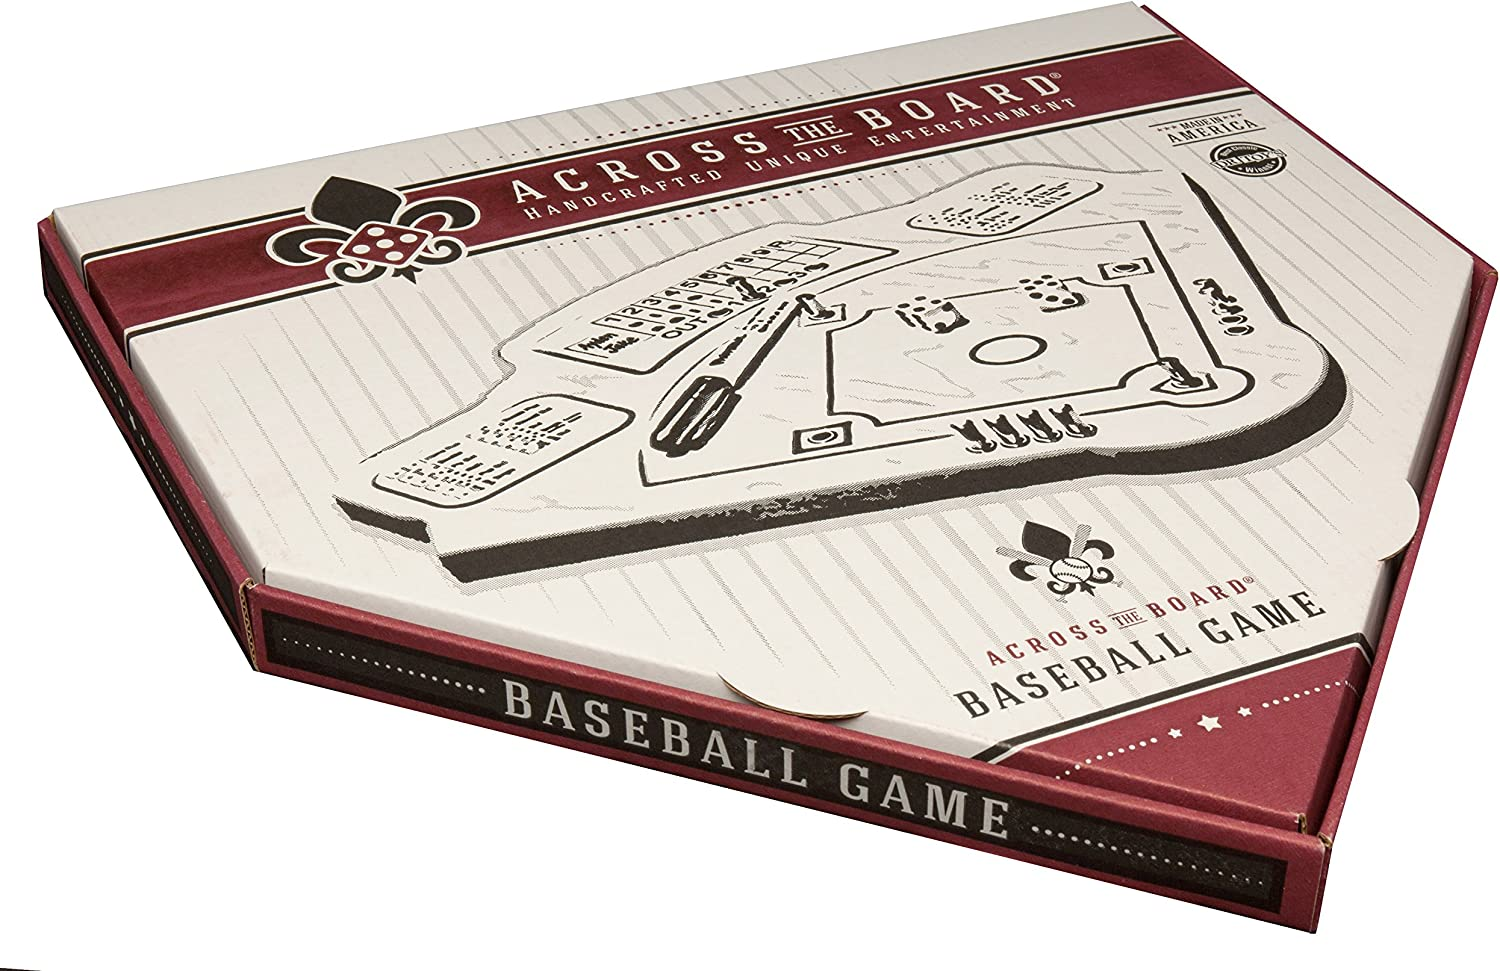 Baseball Game by Across the Board